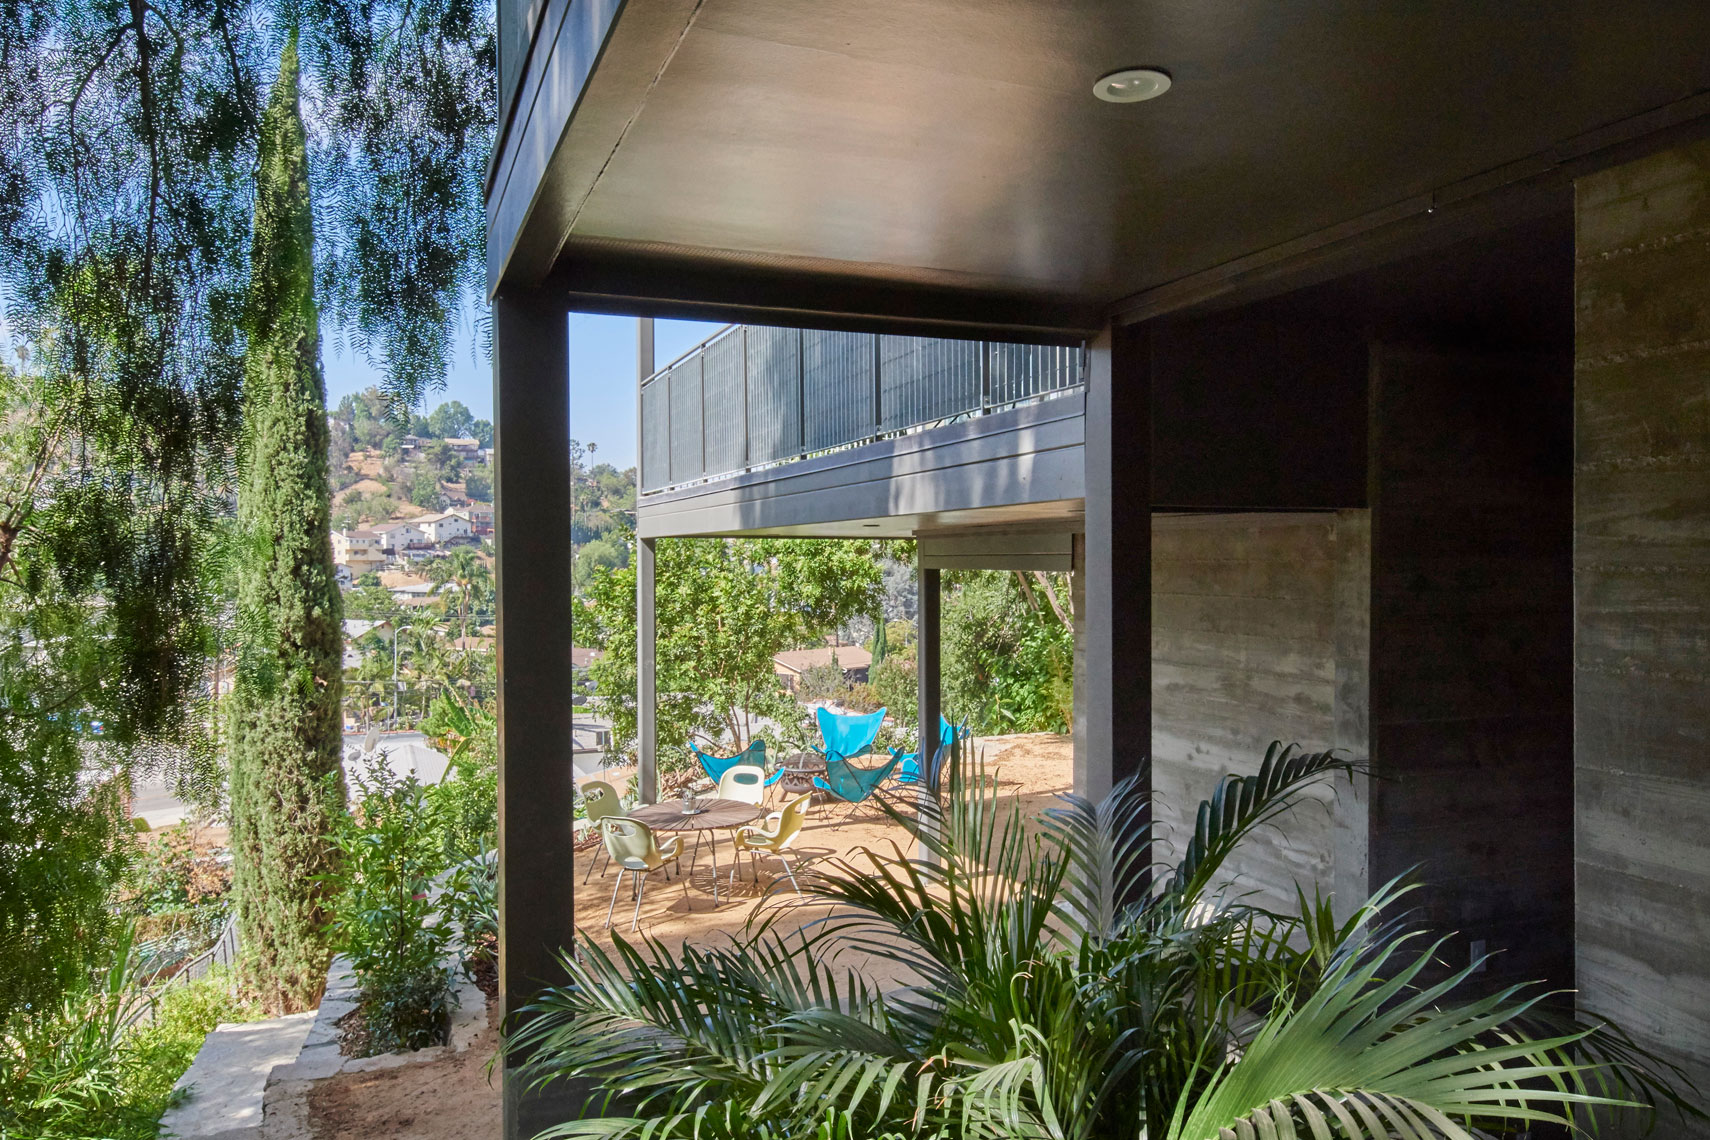 Architecture-photography-of-patio-contemporary-home-by-Joe-Atlas-architectural-photographer-Los-Angeles.